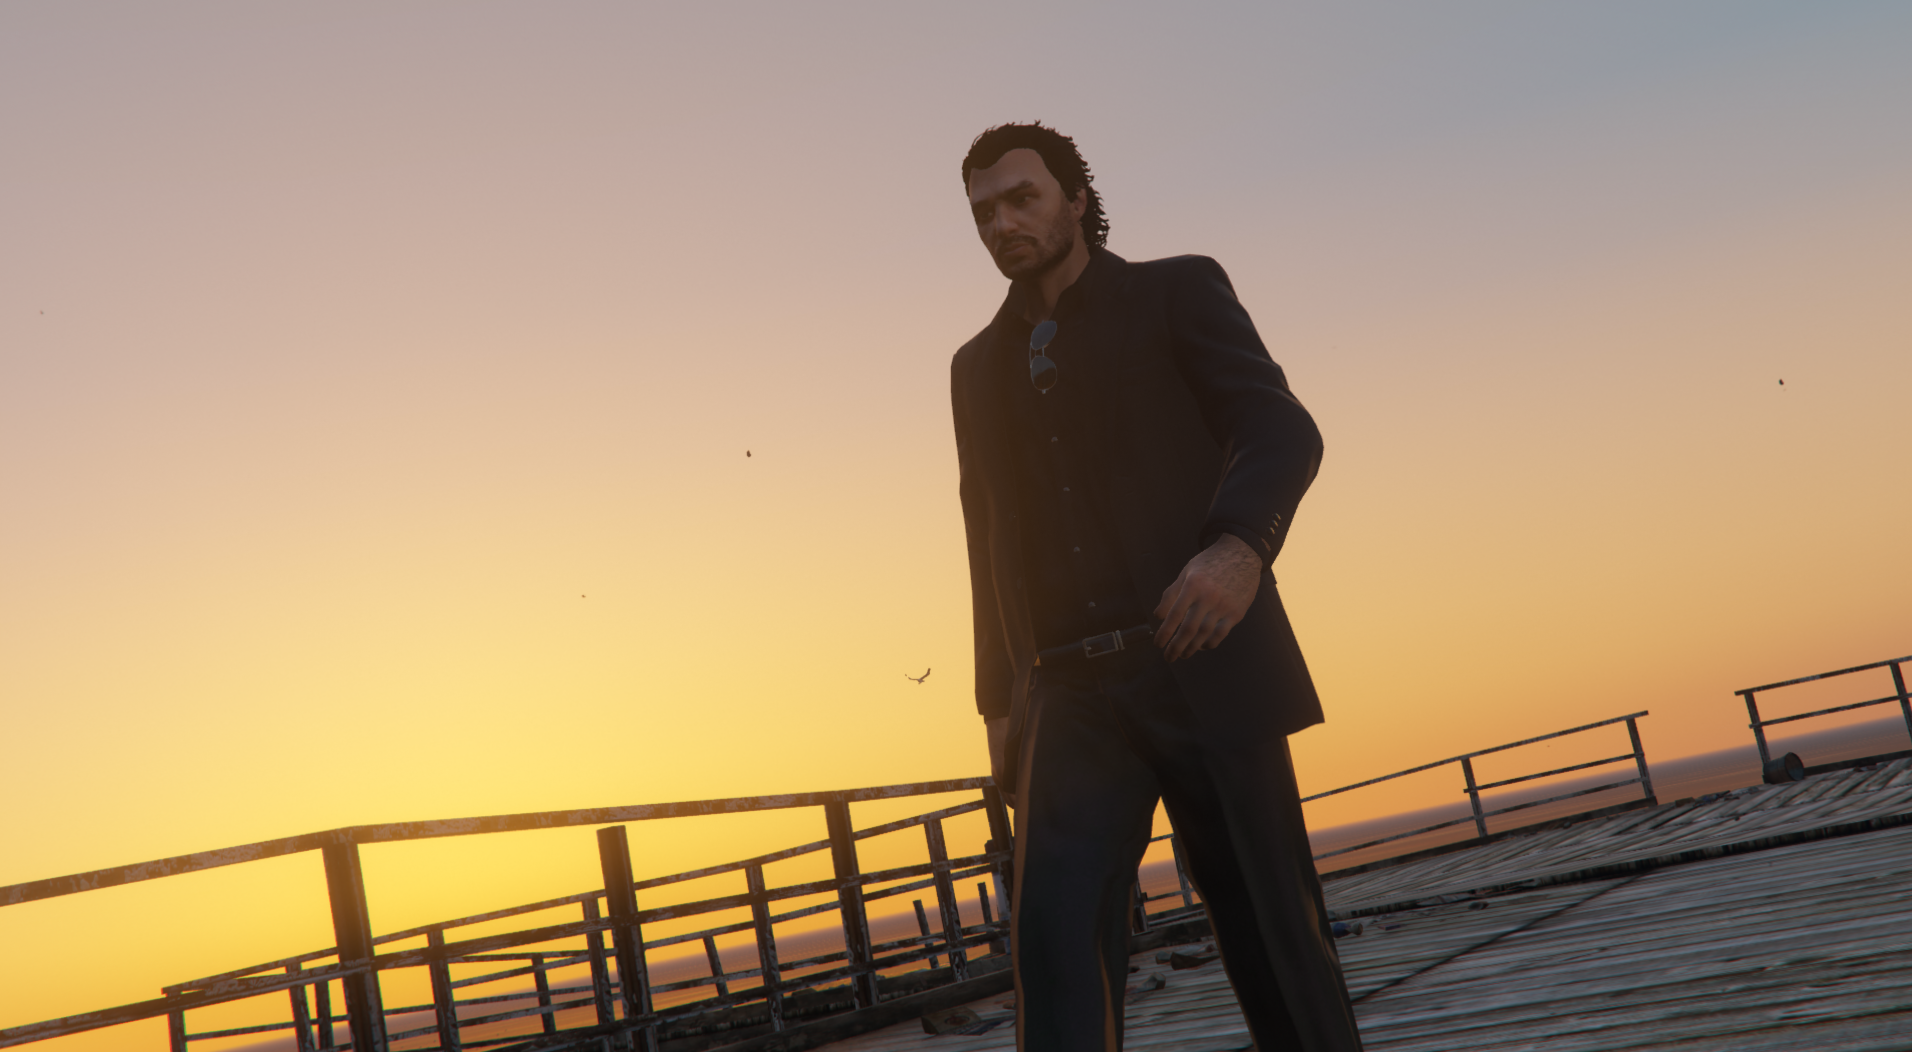 Grand_Theft_Auto_V_Screenshot_2020.01.13